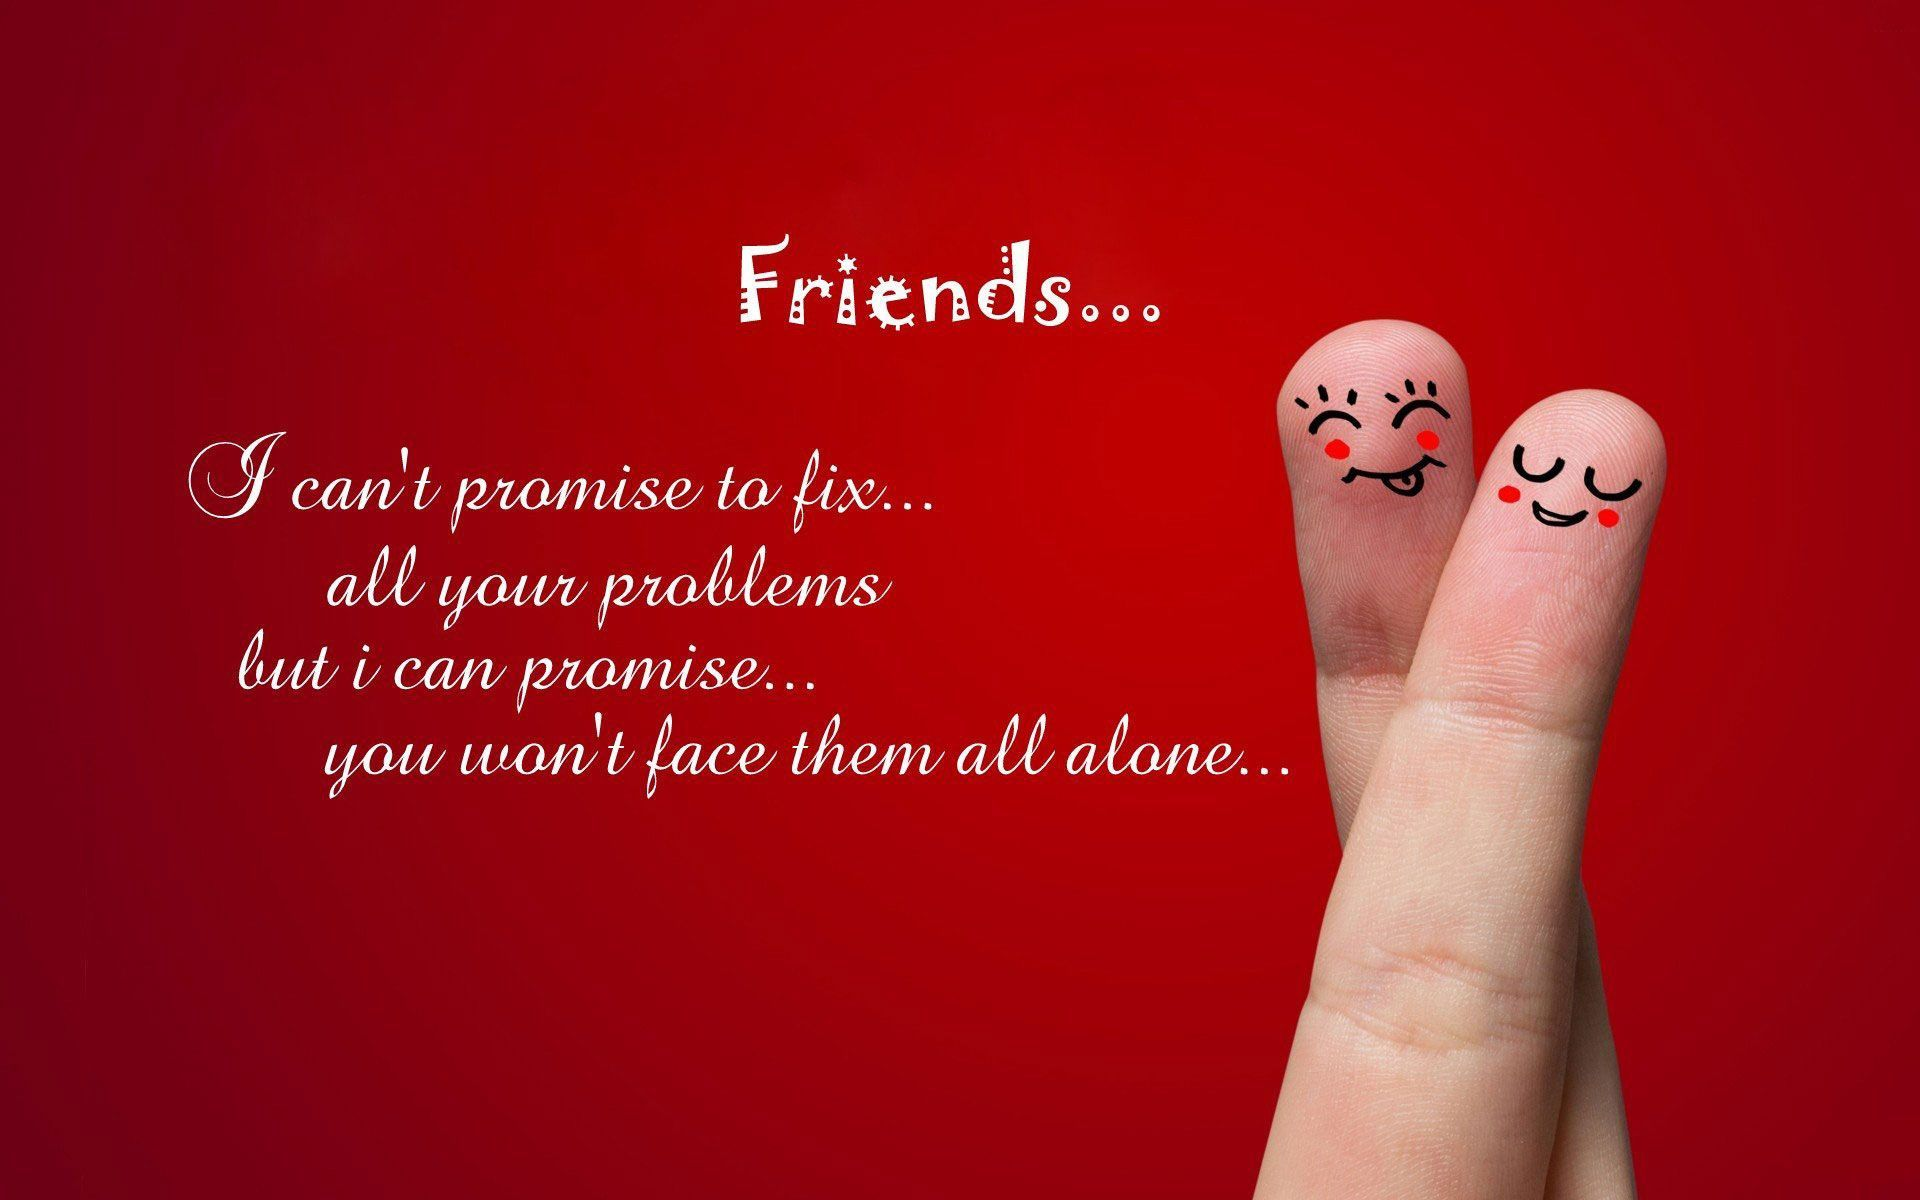 25 Great And Strong Friendship Quotes Images Pictures Page 2 Of 31 Quotespost Friendship Quotes Images Friendship Day Quotes Friendship Day Wishes